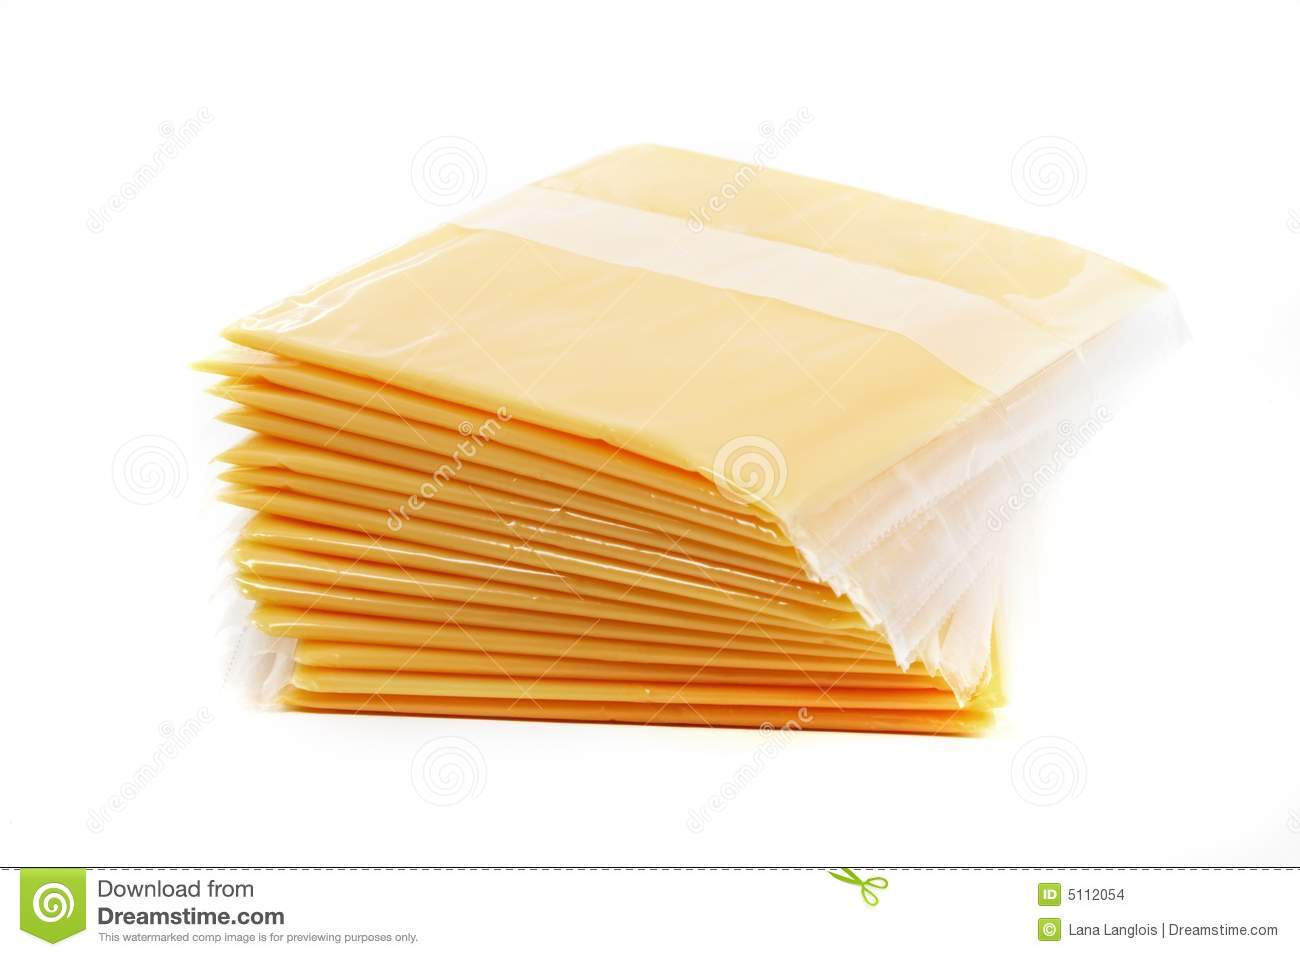 Slices of cheese individually wrapped, isolated on white.